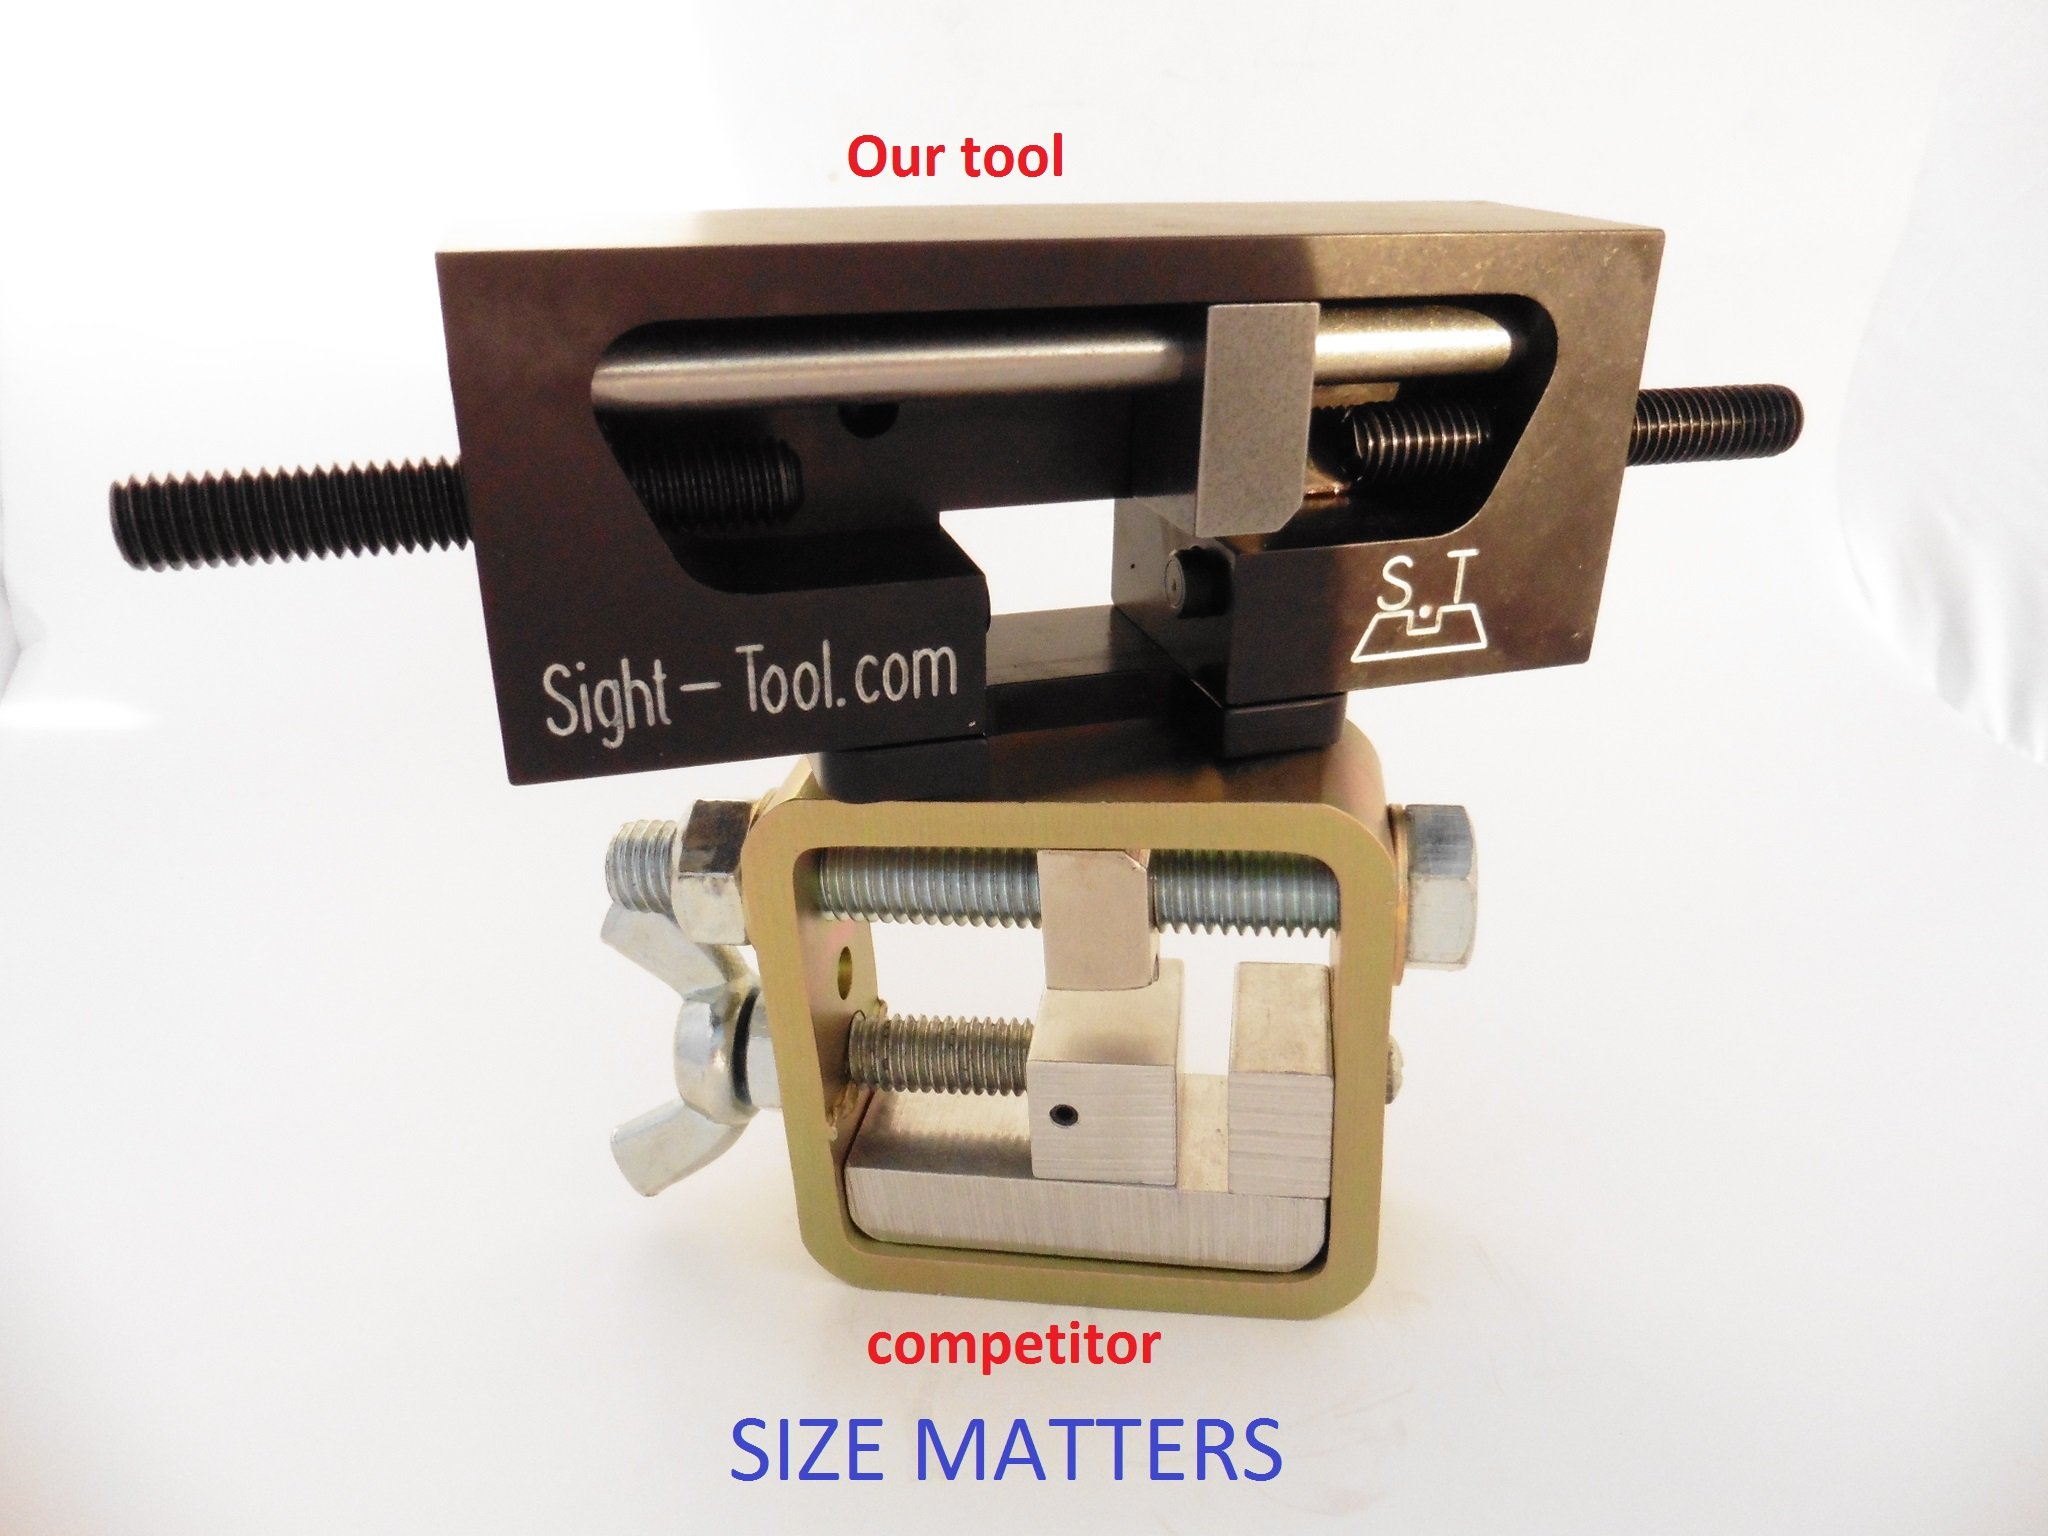 Universal Handgun Sight Pusher Tool for 1911 Sig springfield and others* Best tool on the market for front or rear sights* MADE IN USA by sight-tool.com (Image #6)